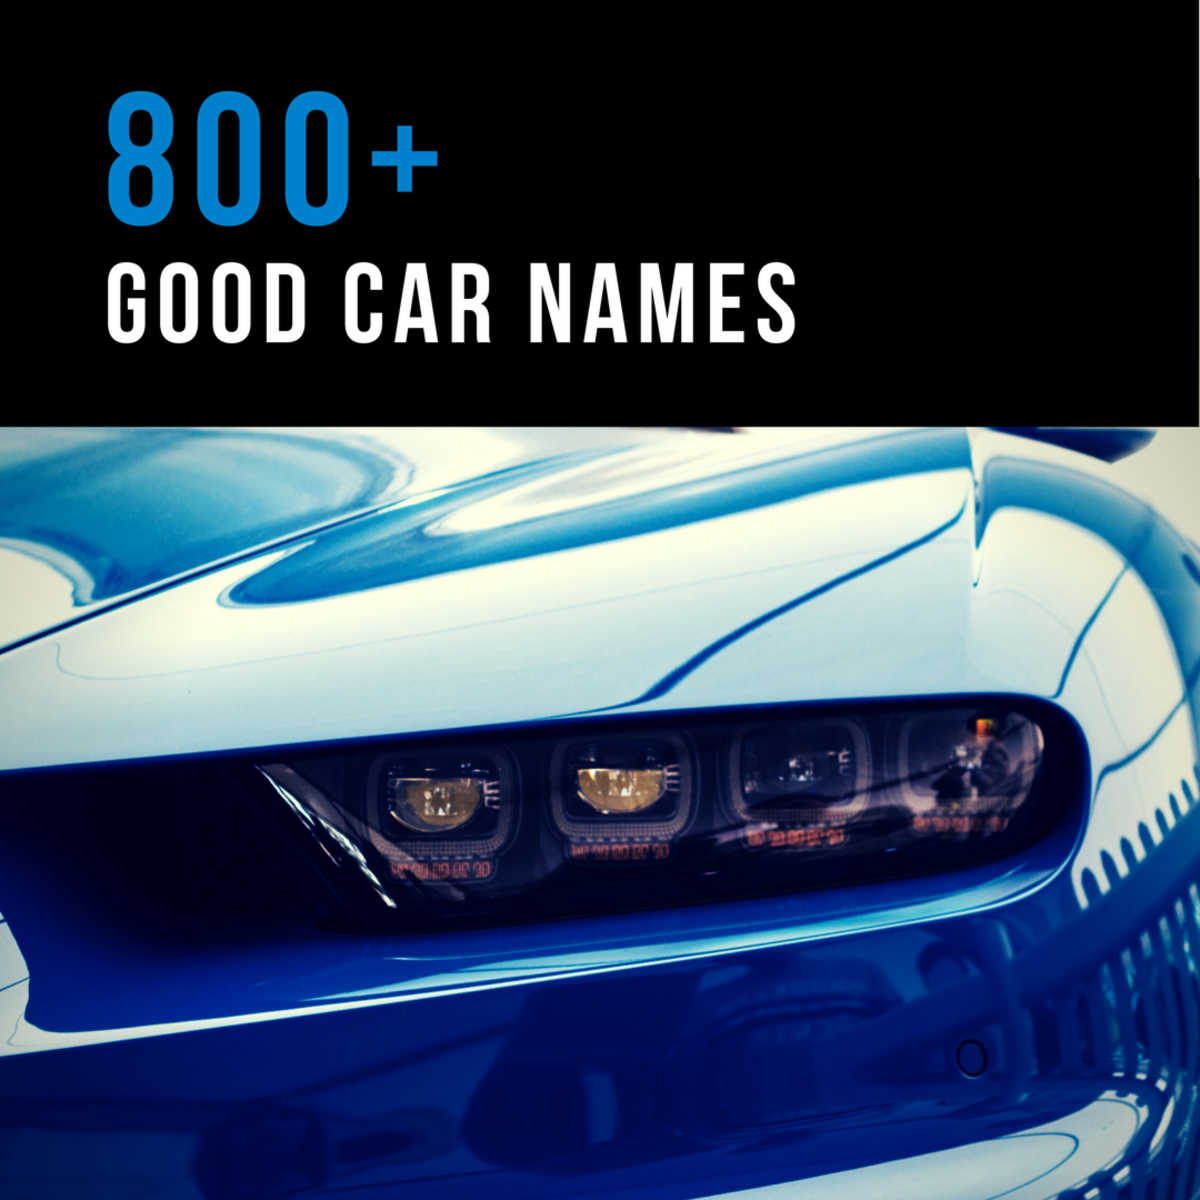 800+ Good Car Names